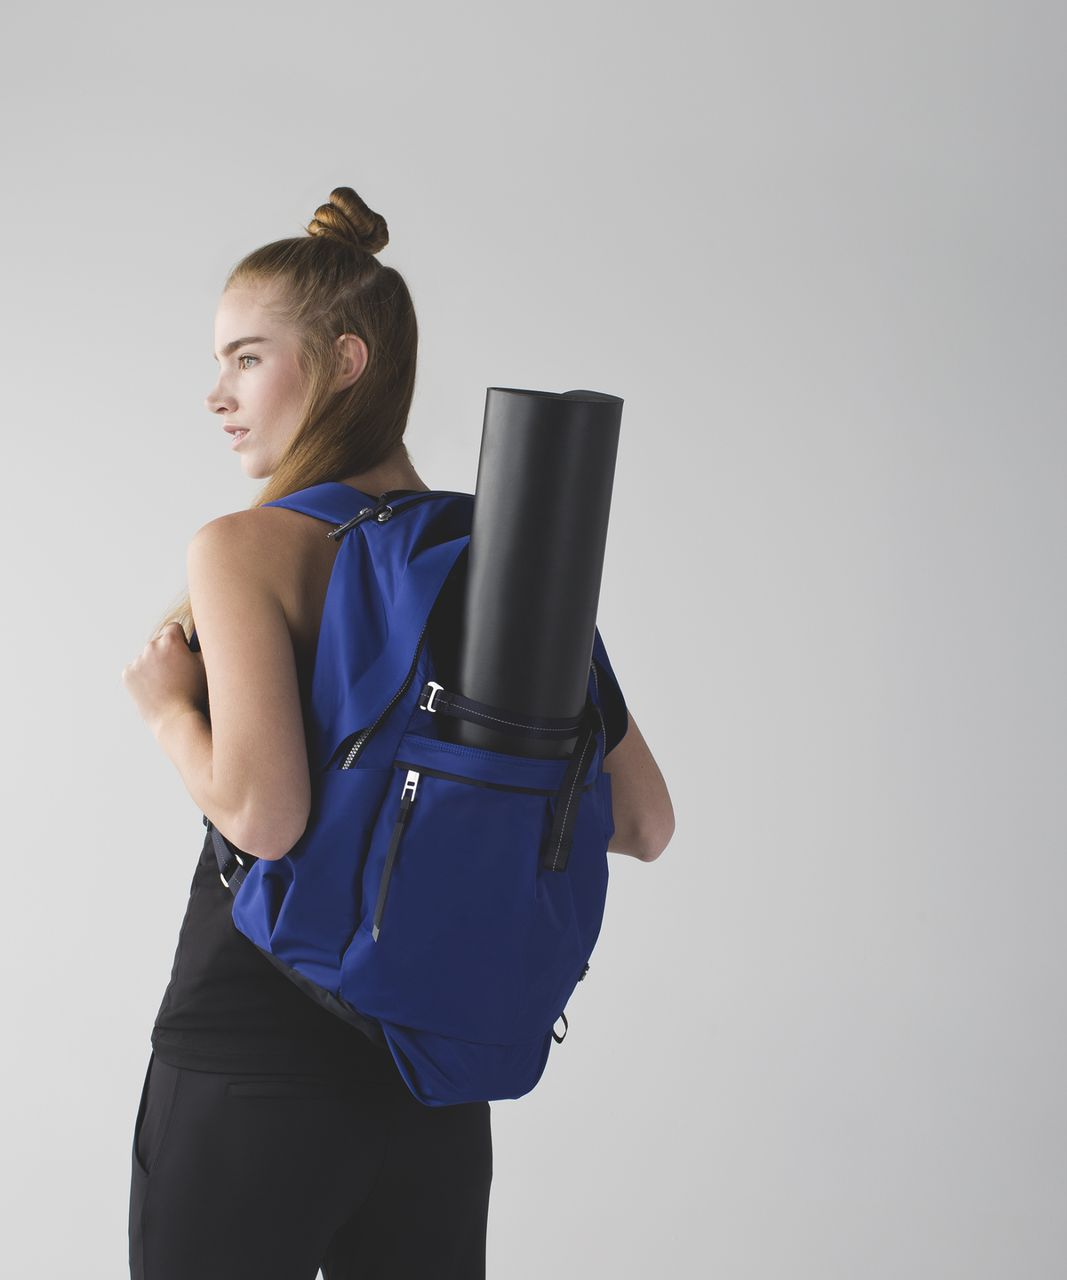 Lululemon Pack It Up Backpack - Sapphire Blue / Naval Blue